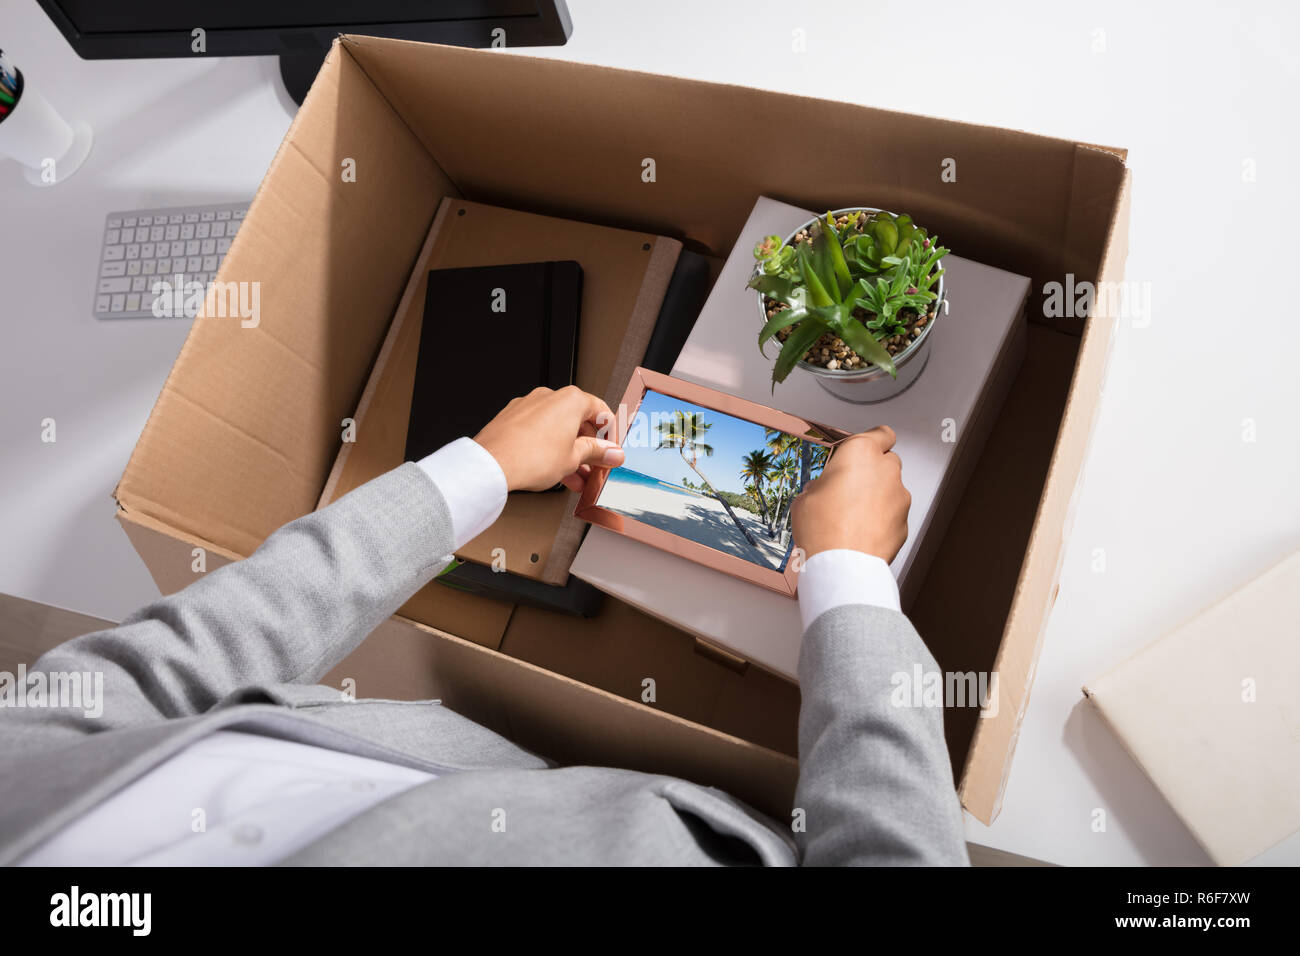 Businesswoman Packing Picture Frame In Cardboard Box - Stock Image